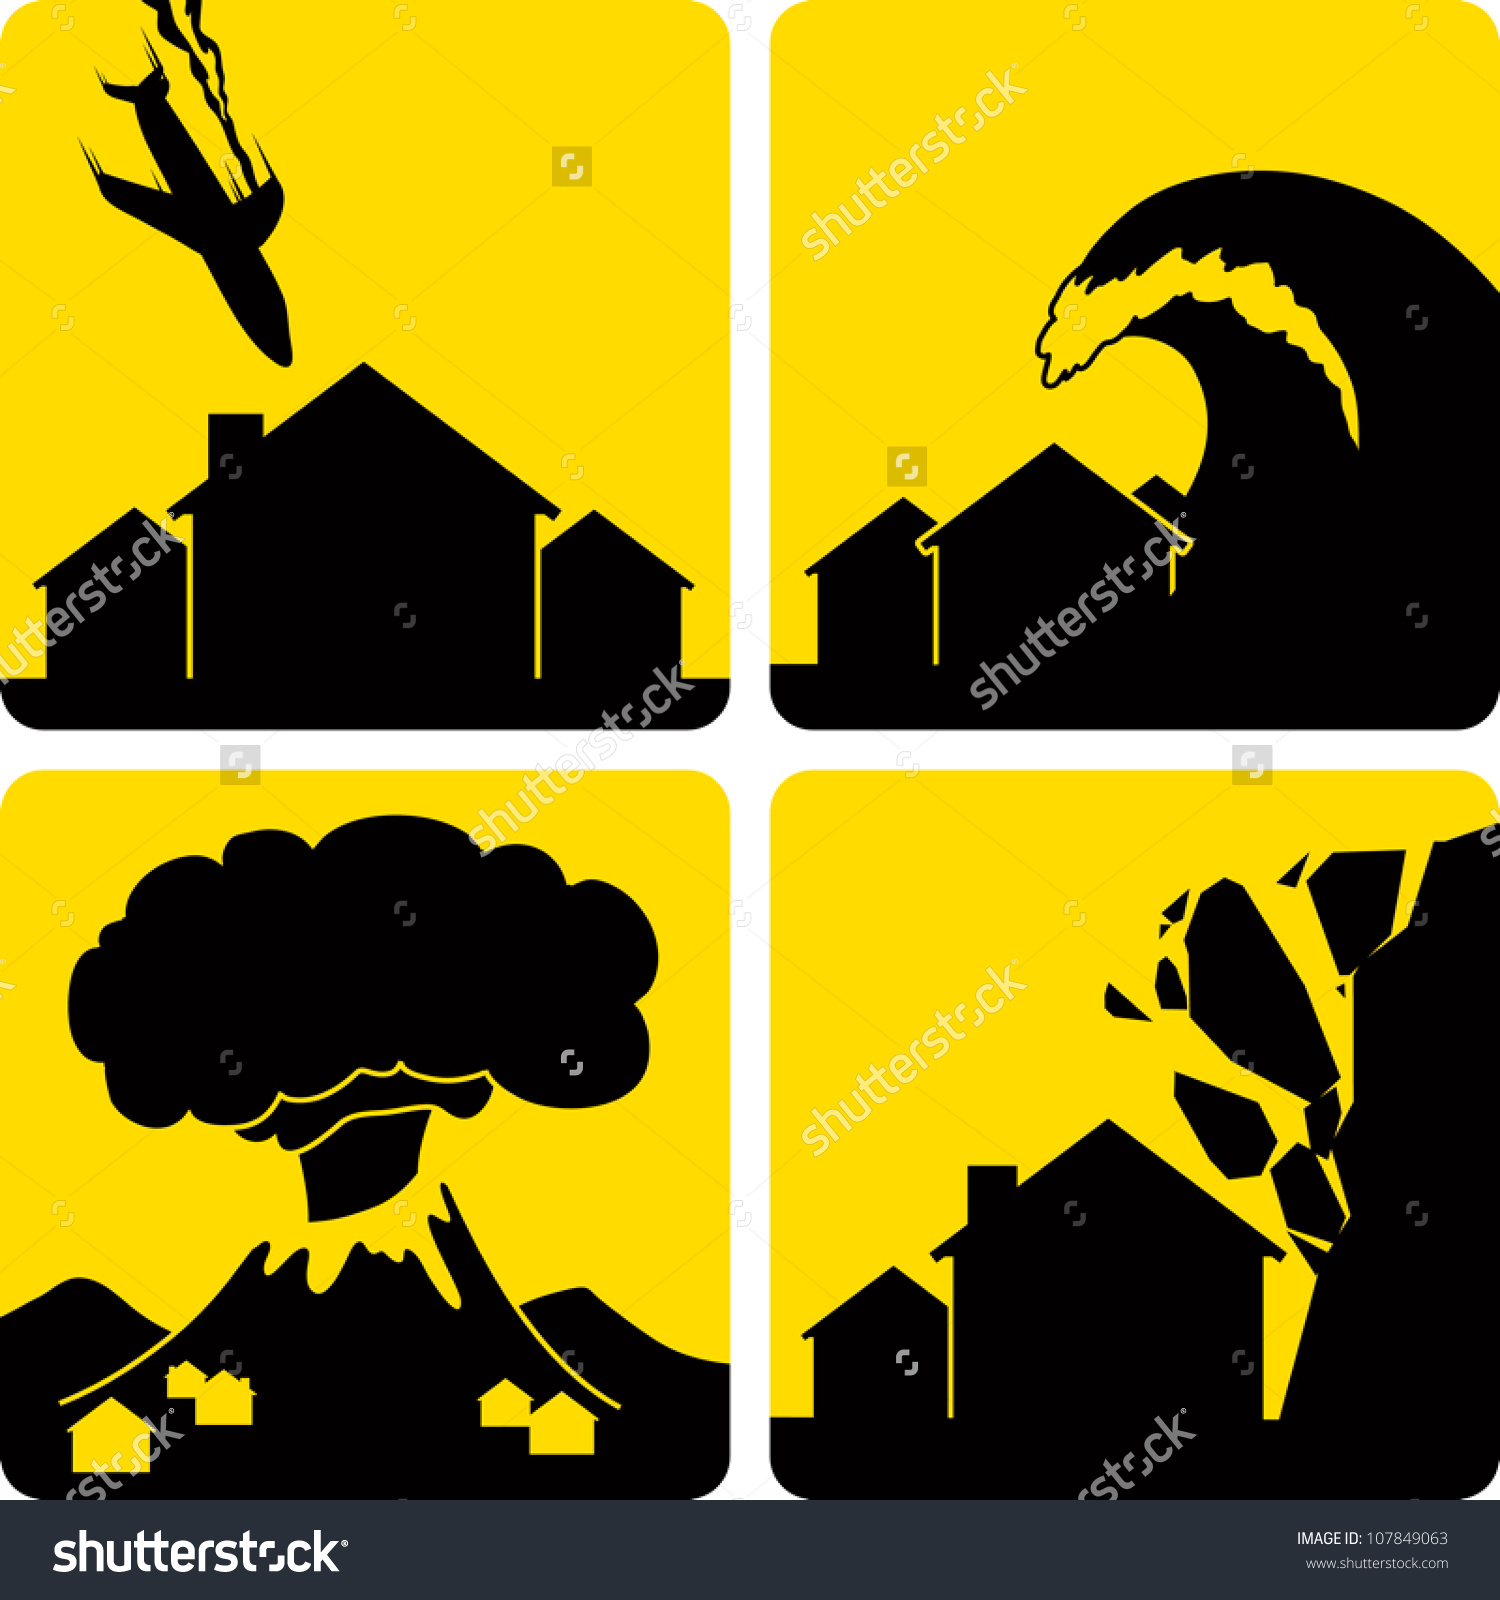 Clip Art Illustration Styled Like Universal Stock Vector 107849063.